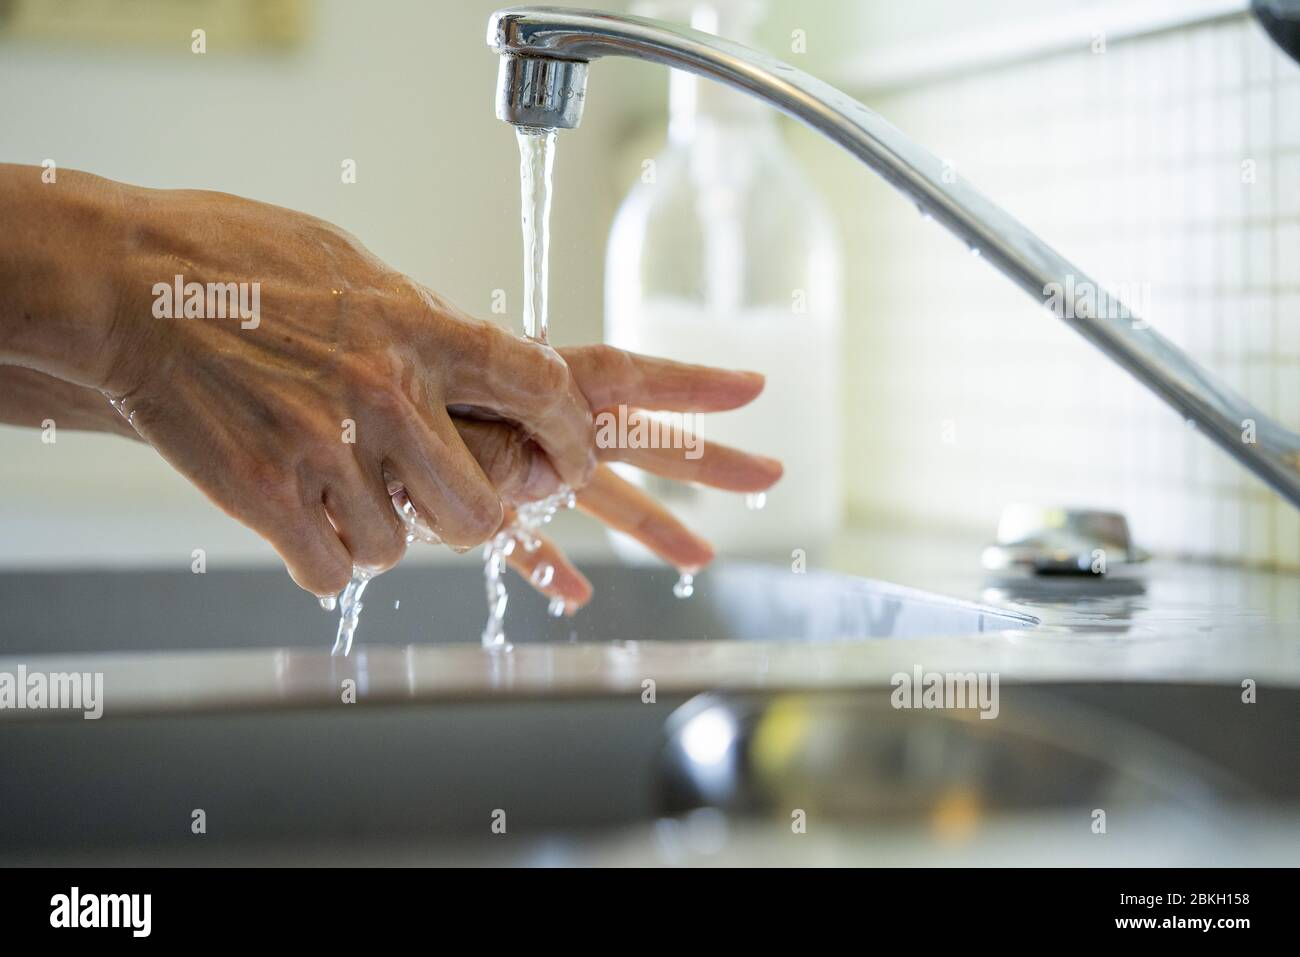 Man washing hands with water in bathroom sink Stock Photo